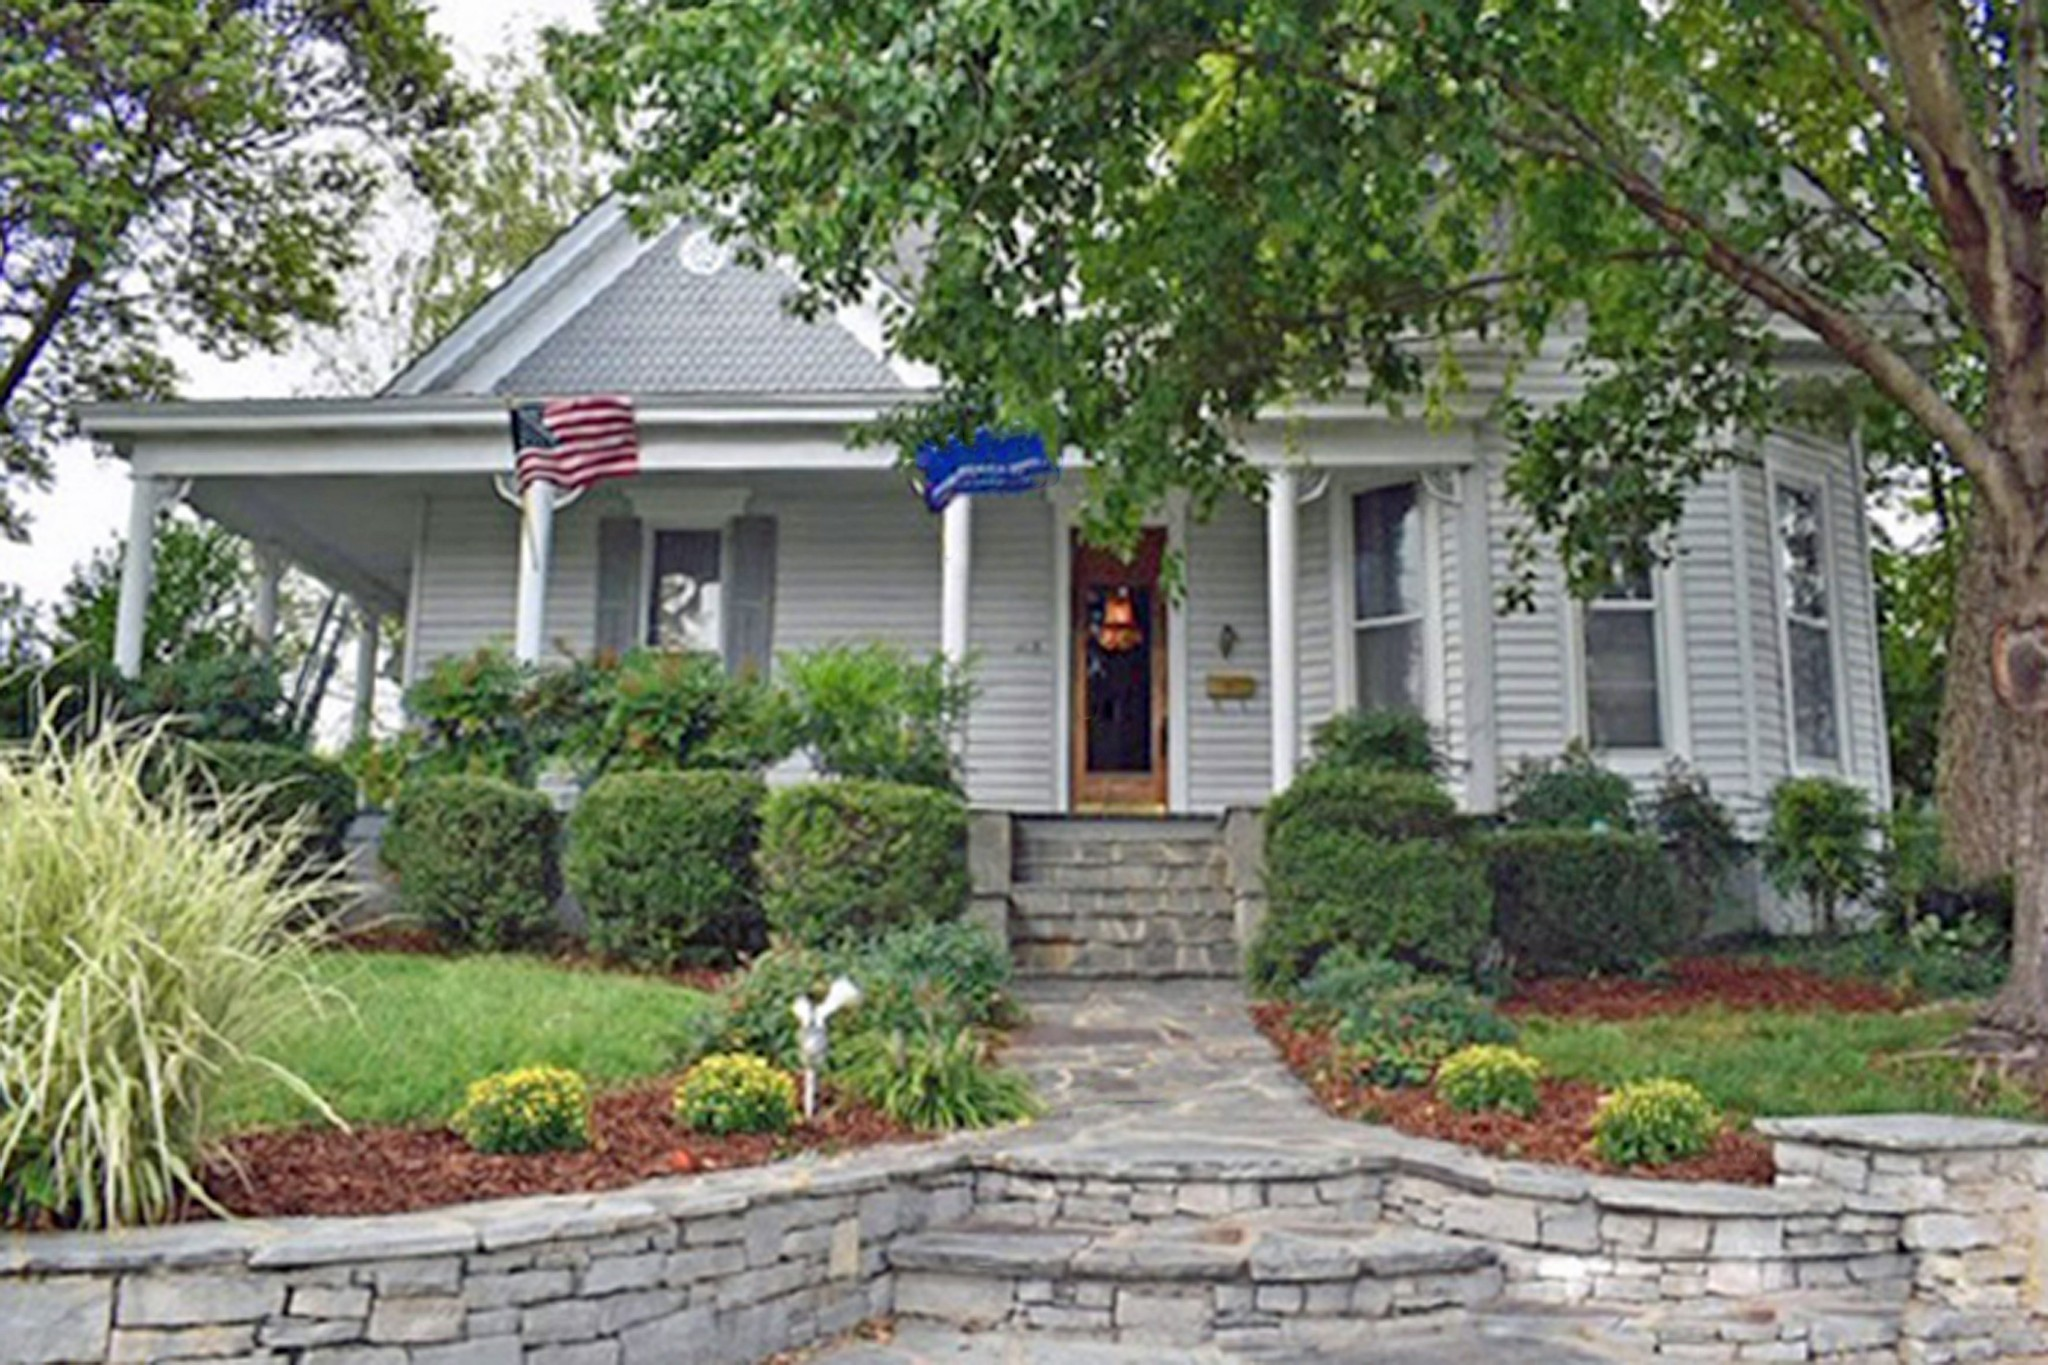 413 N Main St Property Photo - Franklin, KY real estate listing